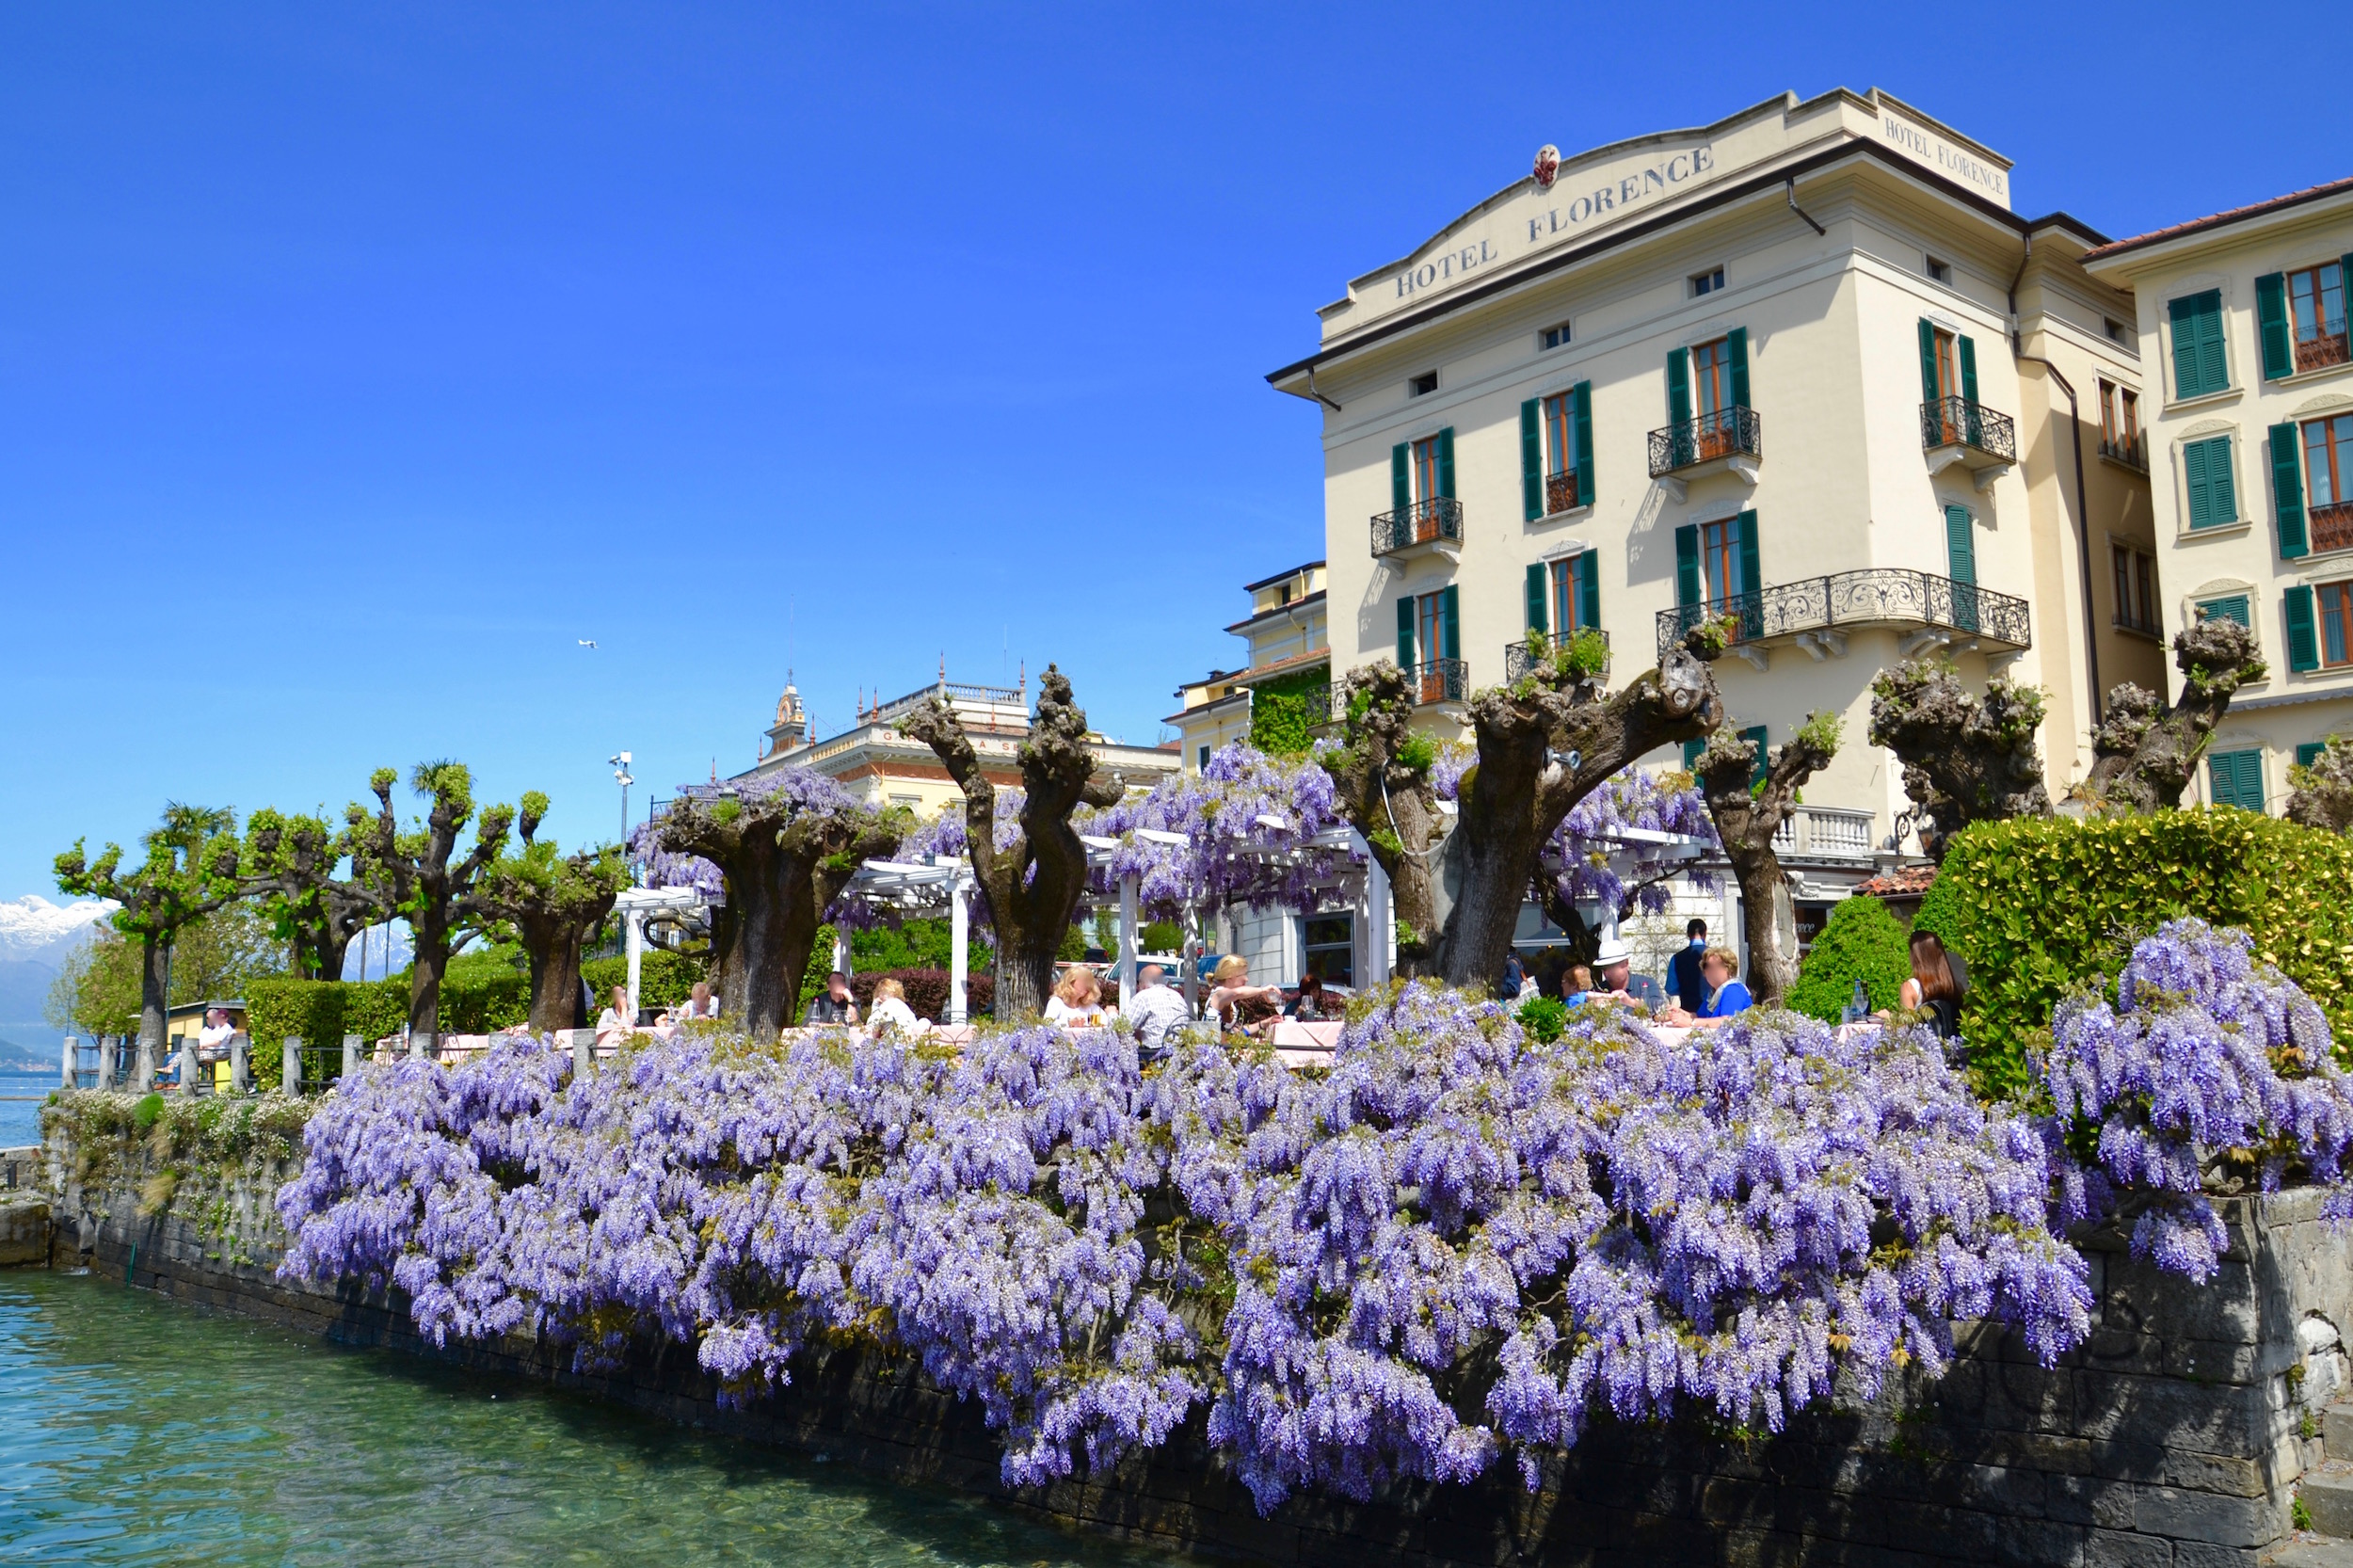 Albergo Firenze Florence Italy Hotel Florence Bellagio